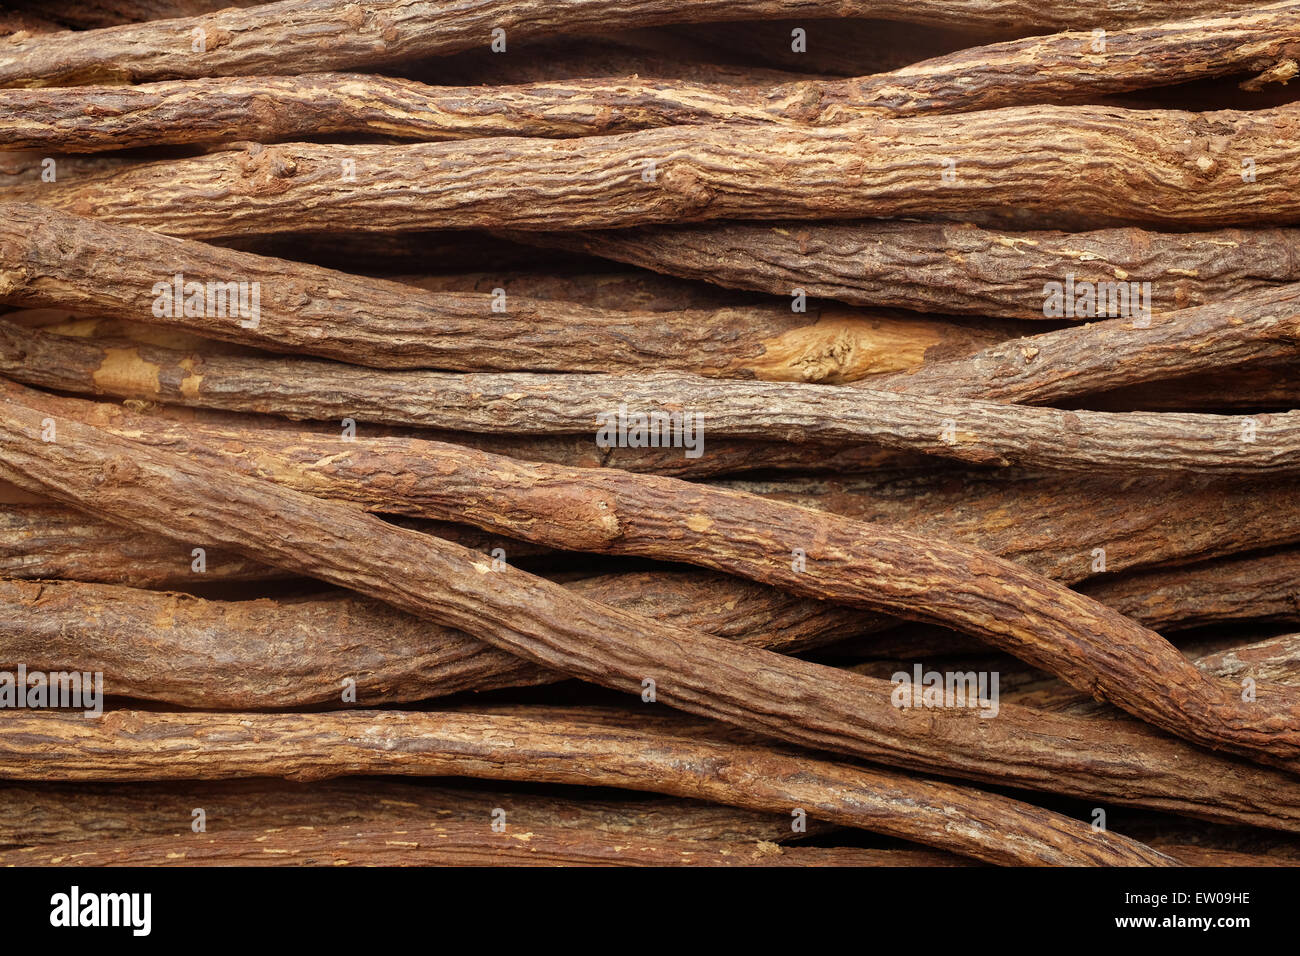 Liquorice root pieces as an abstract background texture - Stock Image